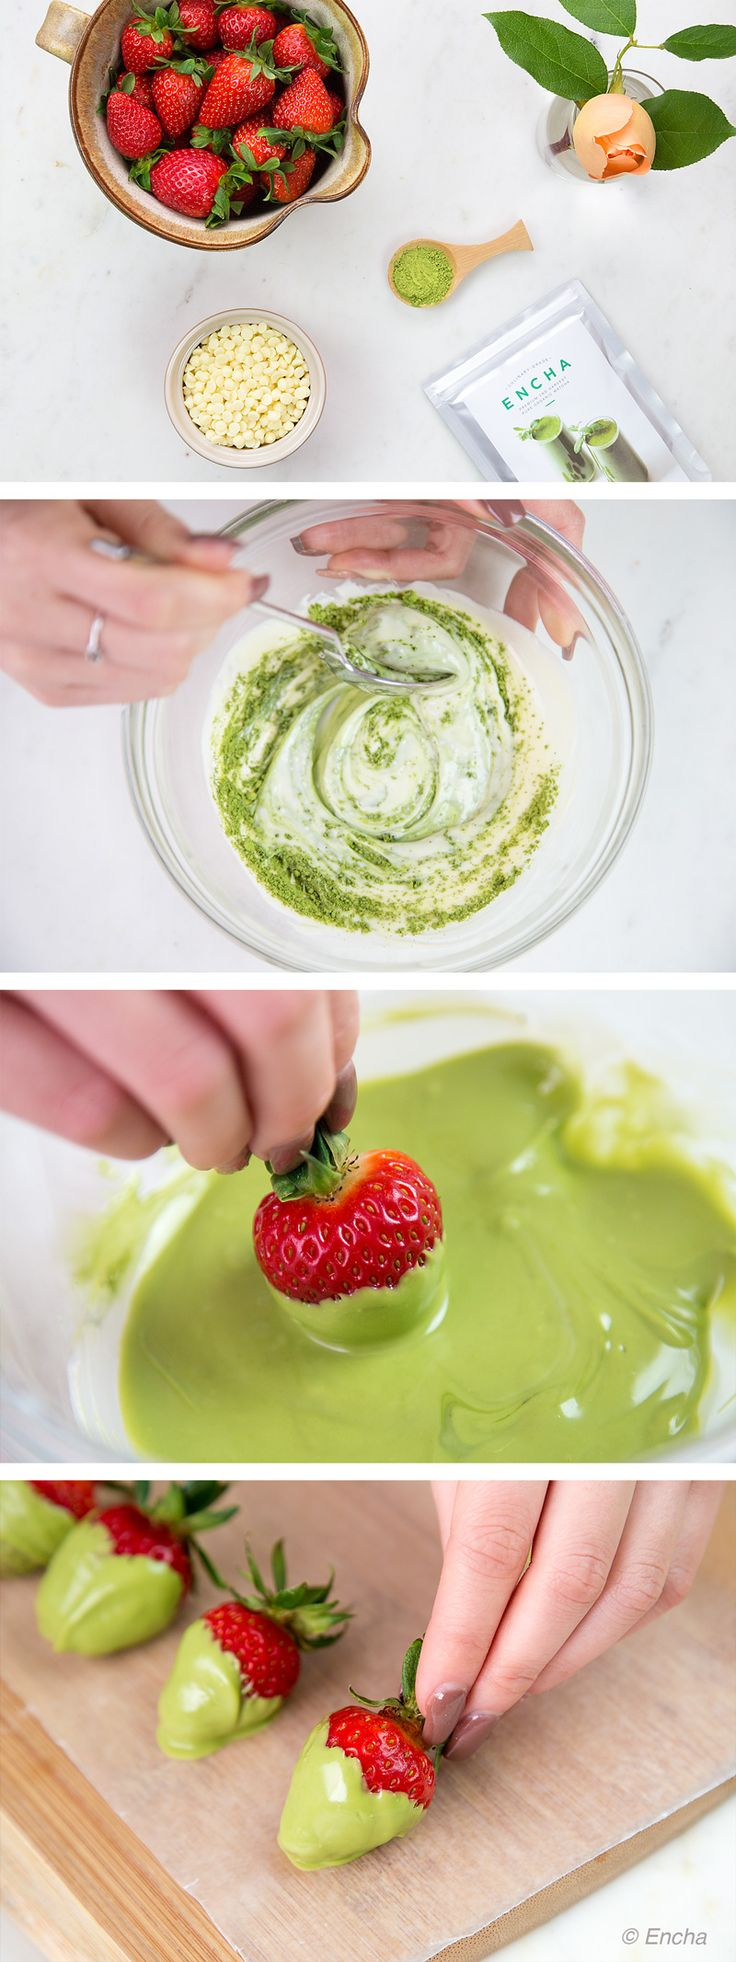 Matcha recipe: matcha chocolate-dipped strawberries with culinary-grade Encha Organic Matcha